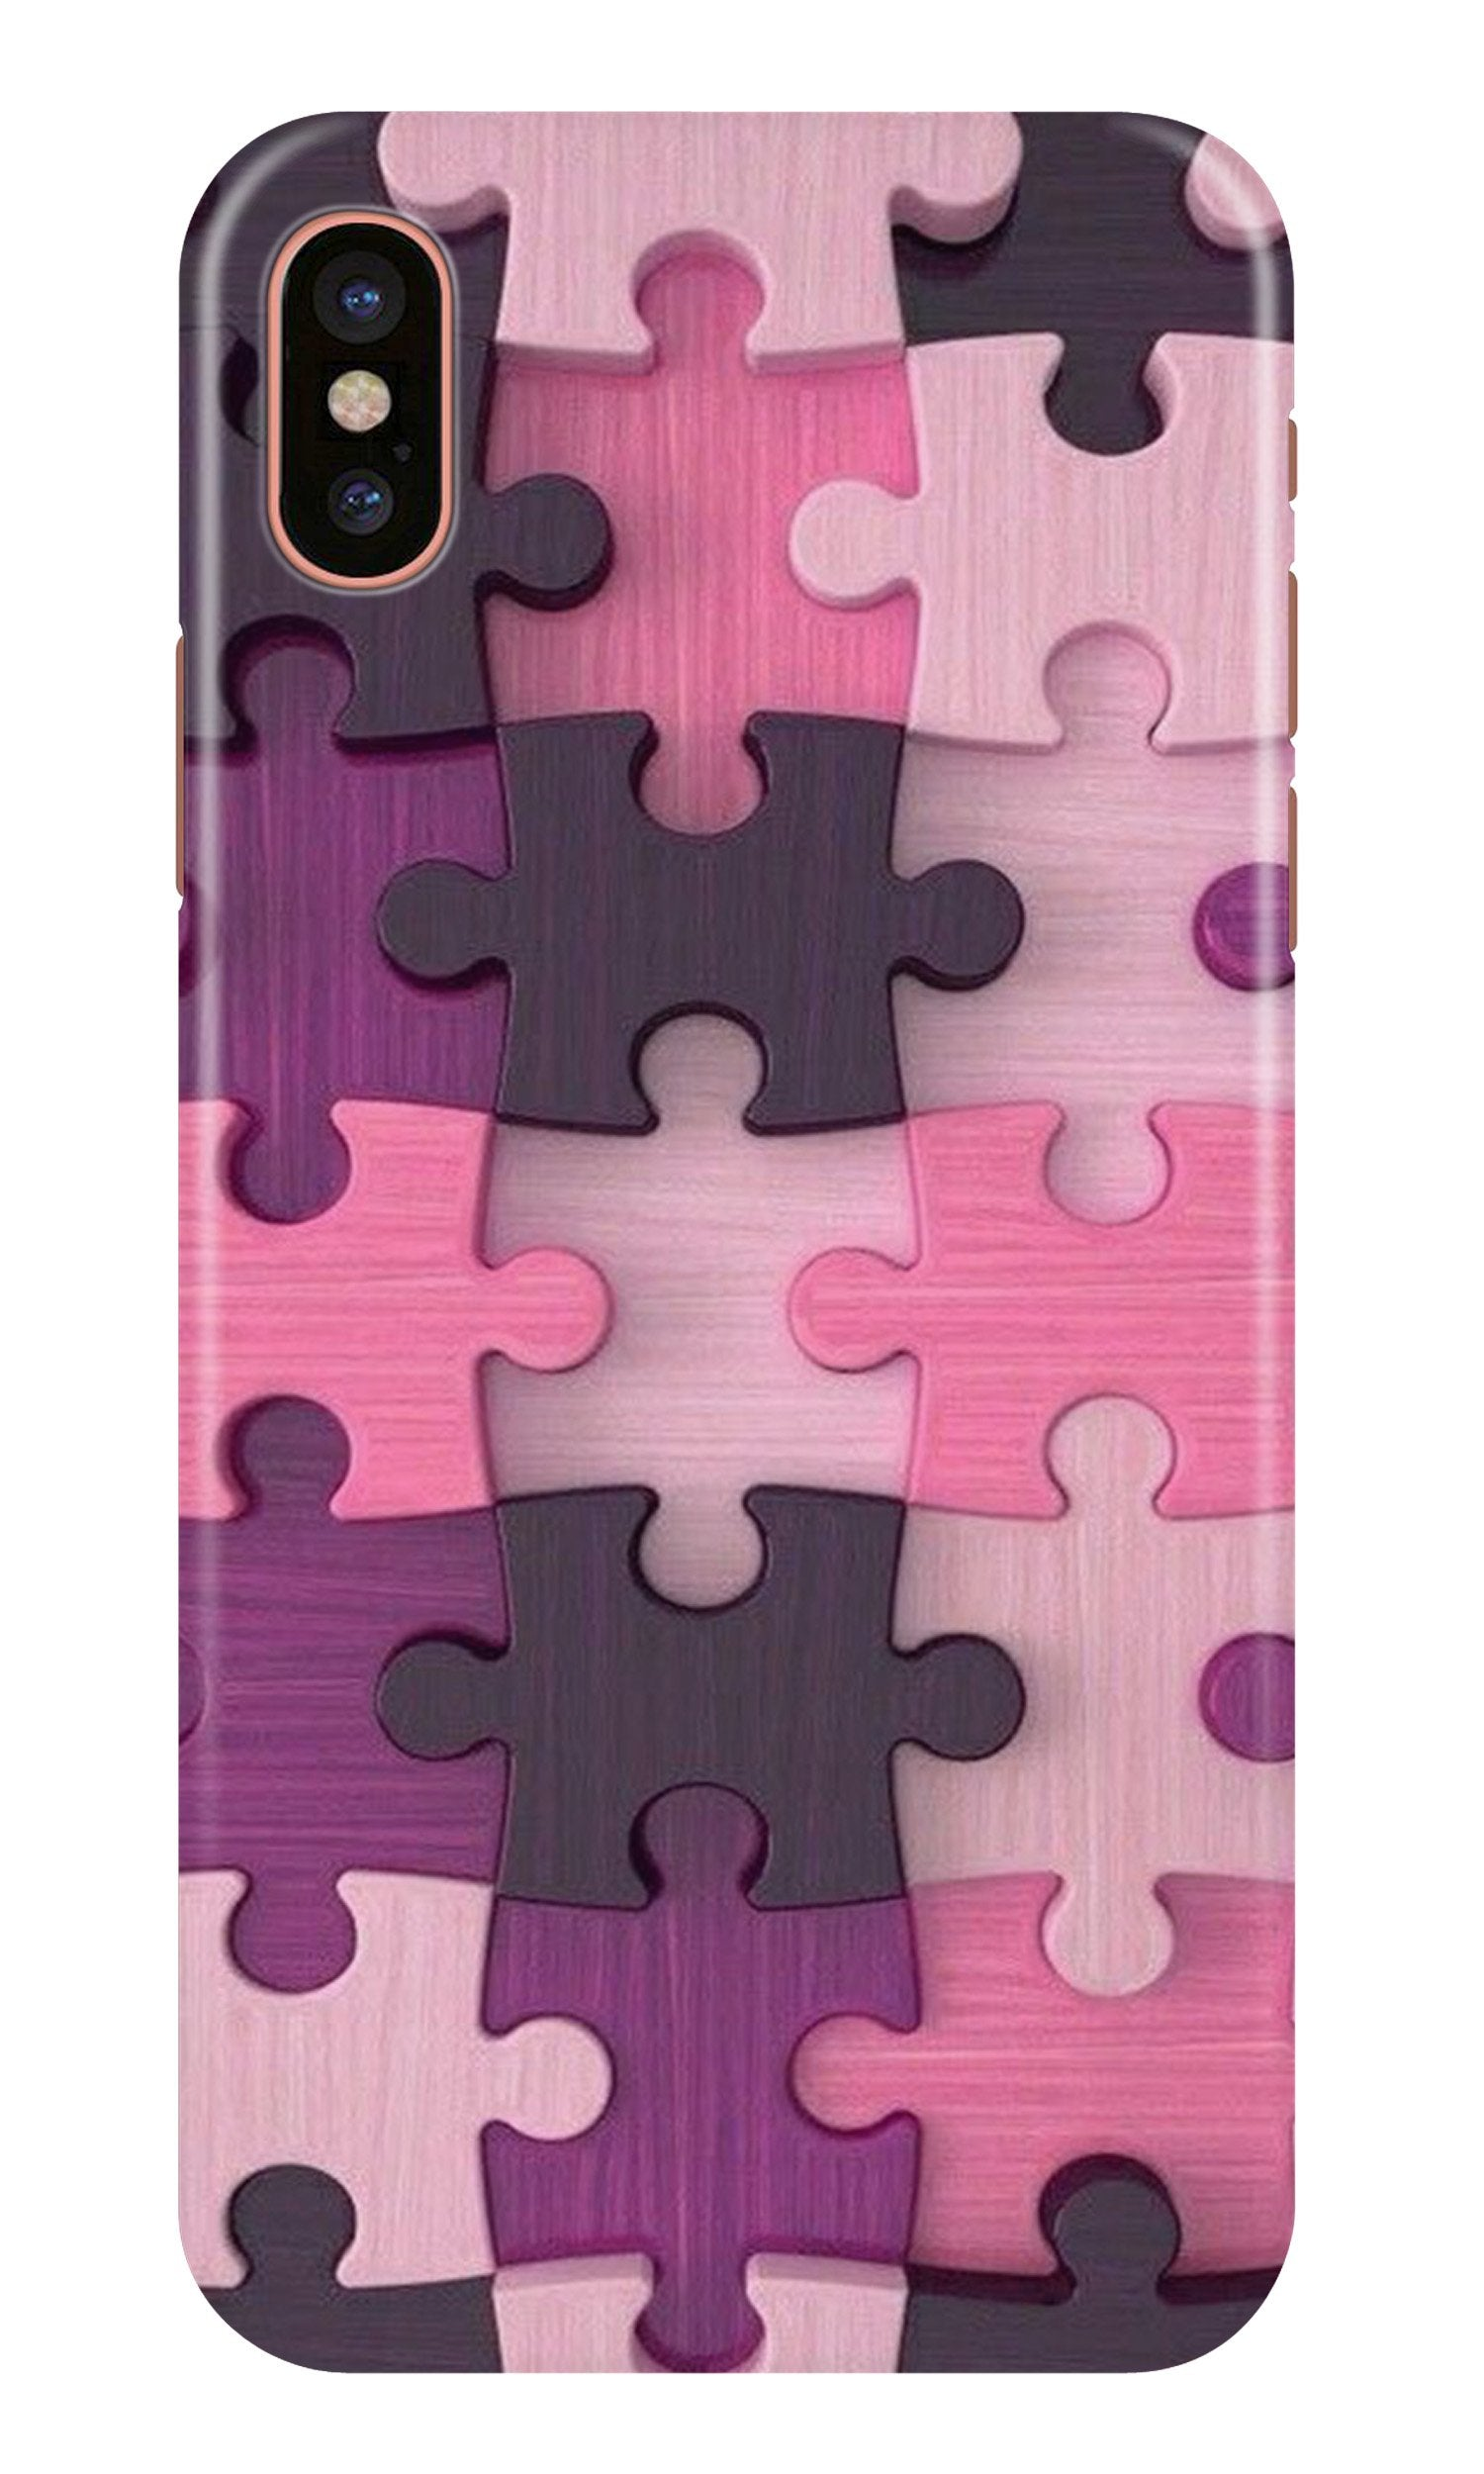 Puzzle Case for iPhone Xr (Design - 199)